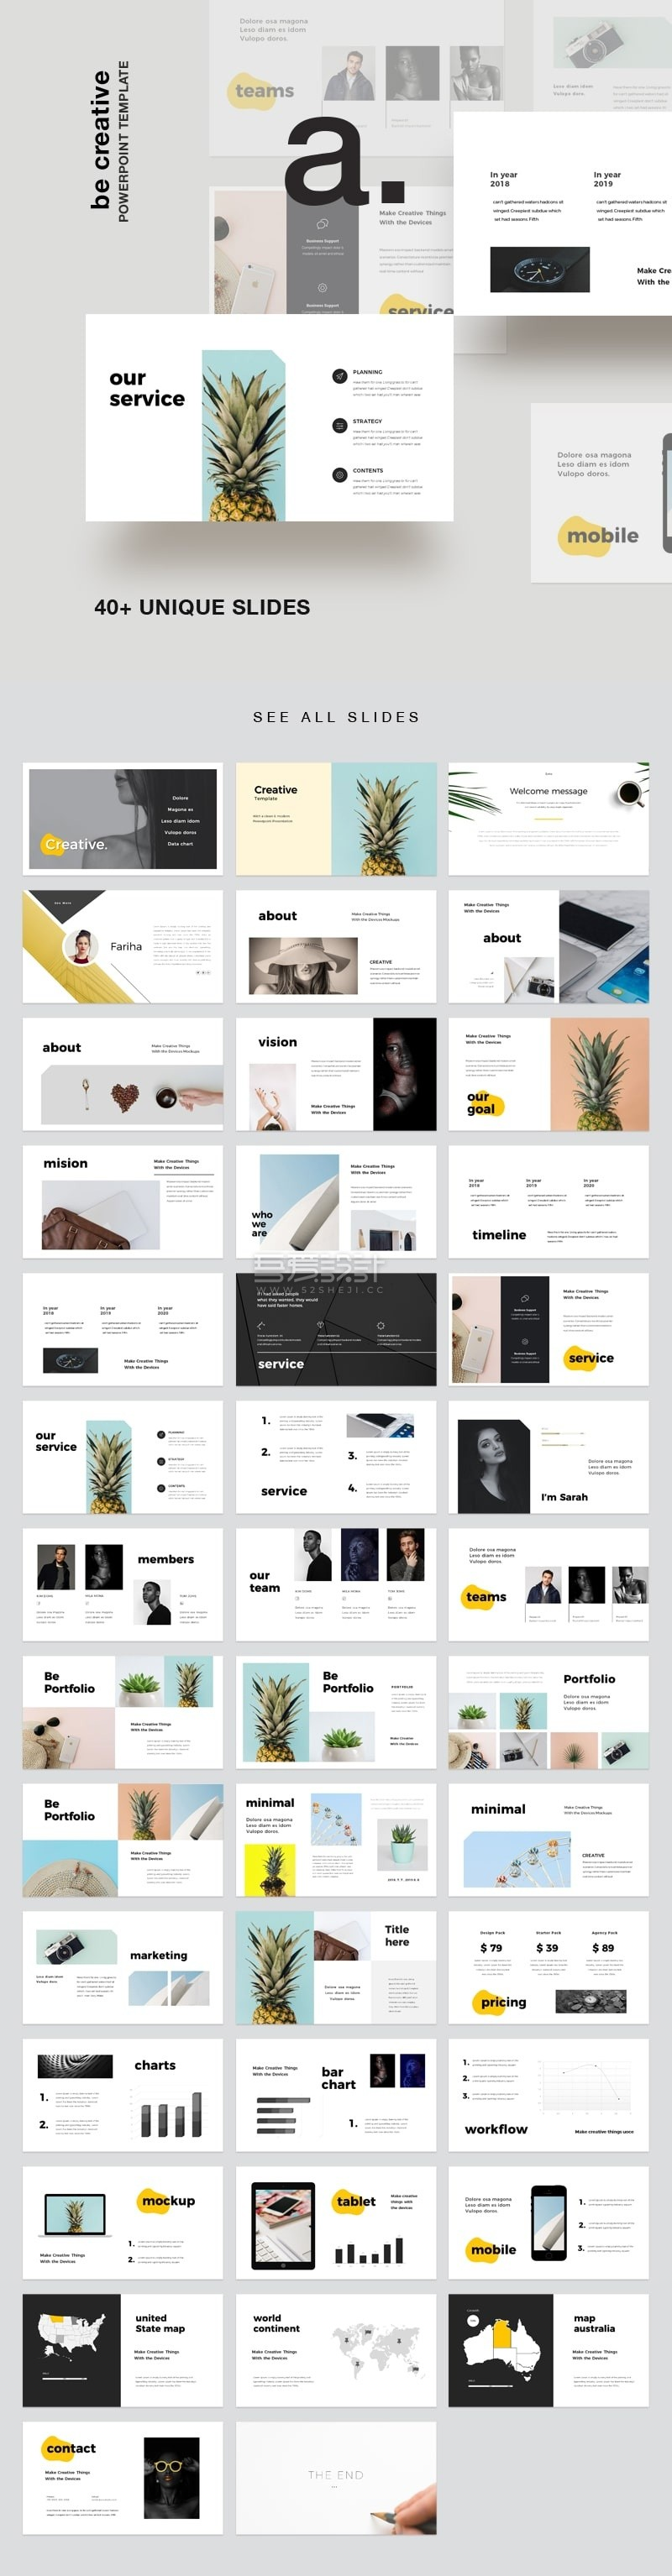 be-creative-powerpoint-presentation-template-1622-preview_a6